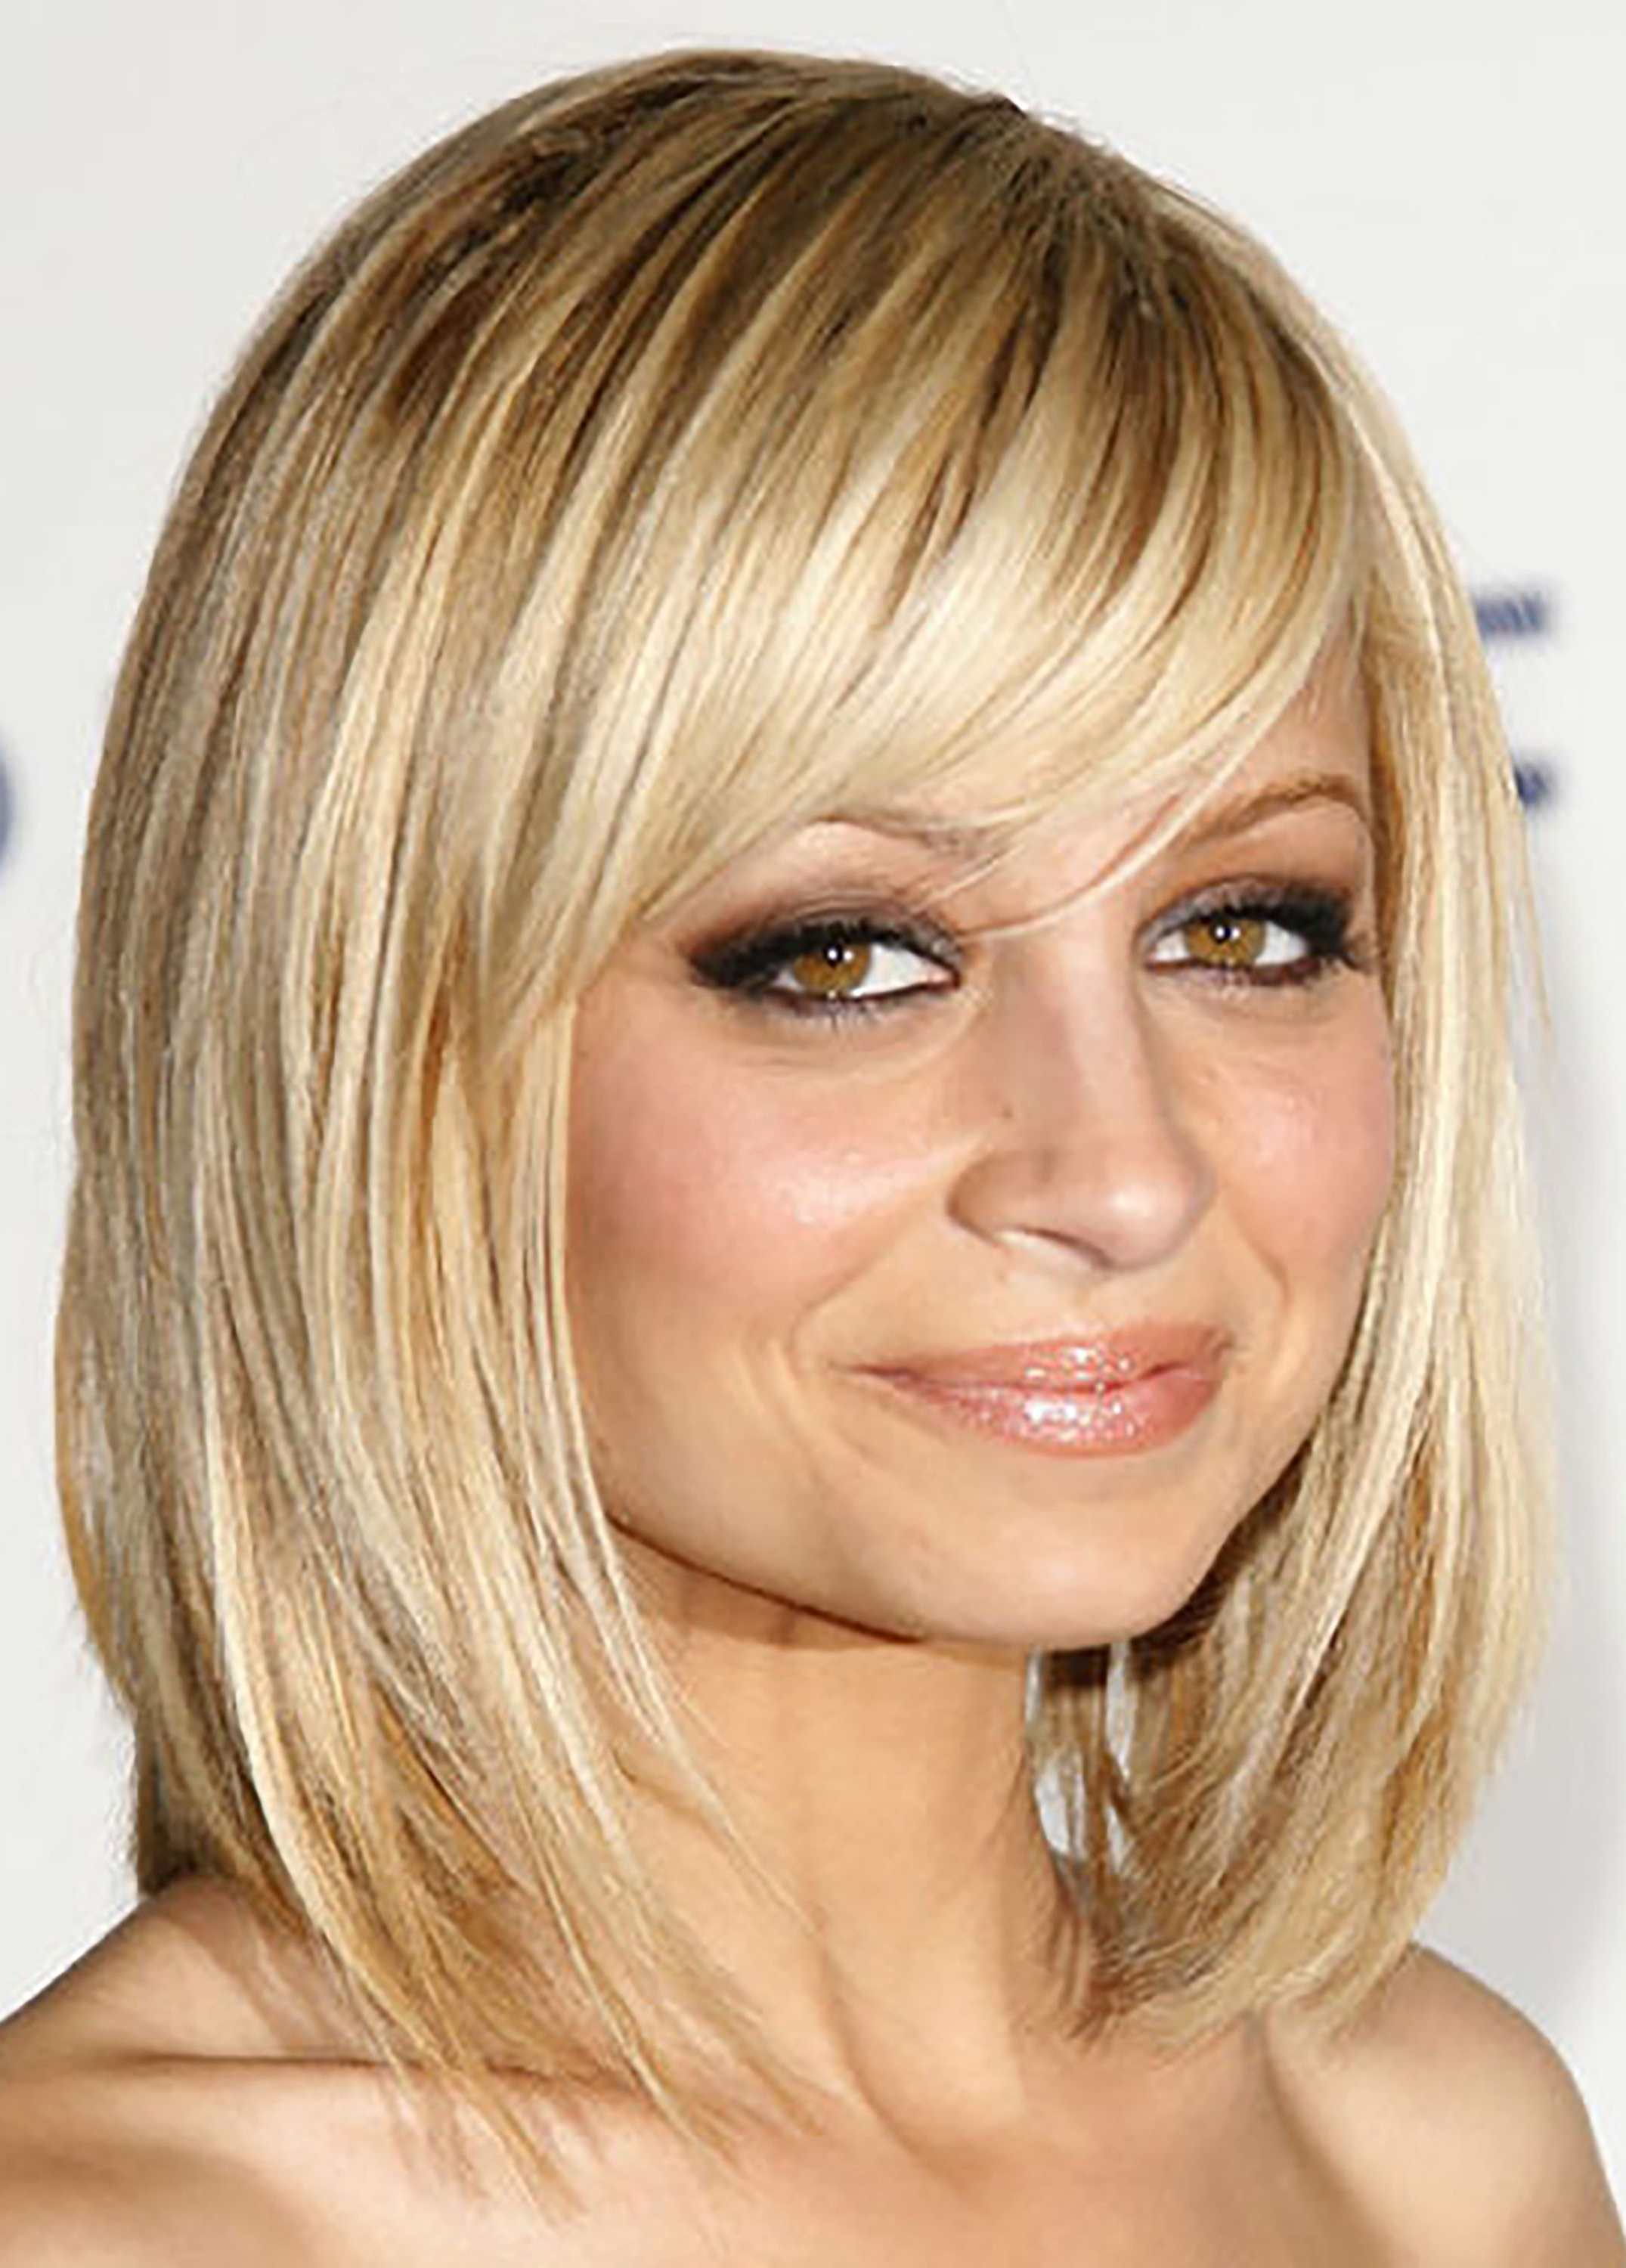 Most Current Medium Haircuts For Women With Big Ears Regarding 35 Cute Short Haircuts For Women 2019 – Easy Short Female Hairstyle (View 10 of 20)